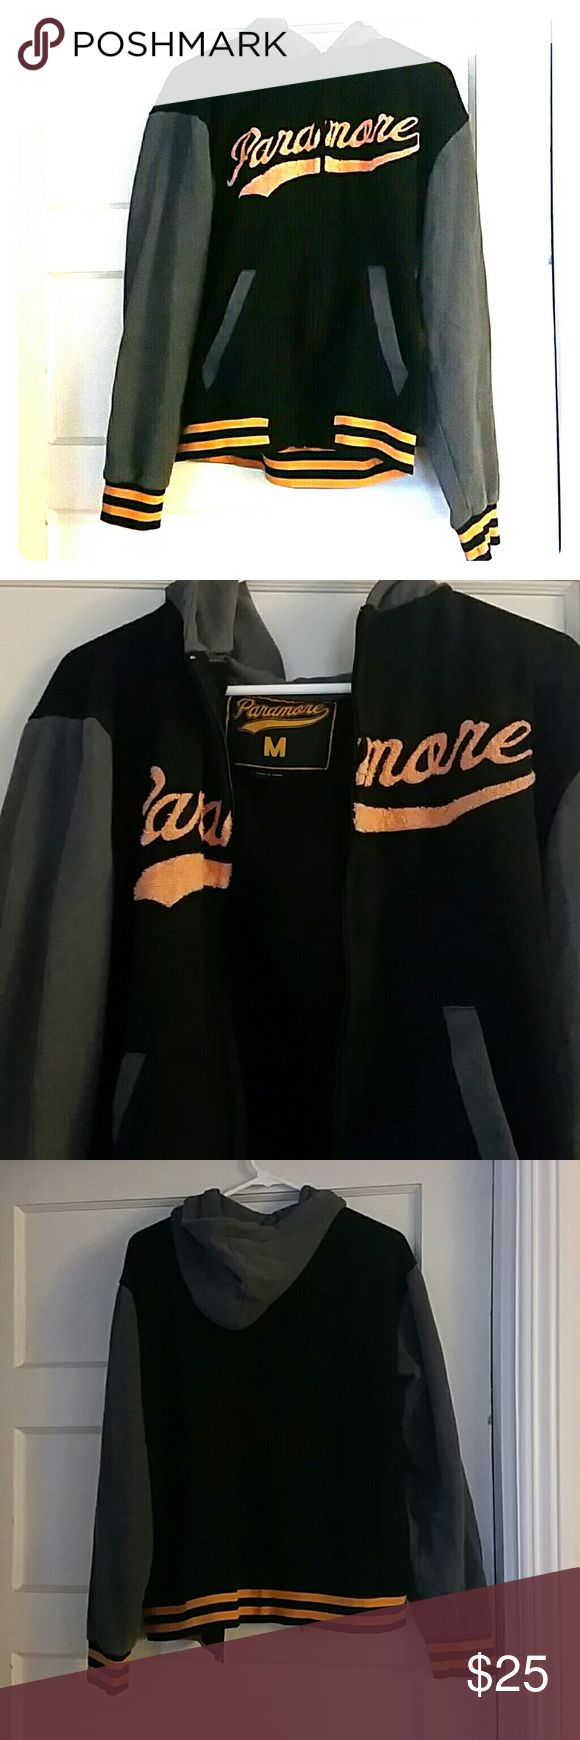 Paramore Varsity Style Zipup Hoodie Size Medium This hoodie has an easy street style. Whether you love Paramore or not, the hoodie is super comfy. Worn with love but still in good condition. The hood is double layered providing extra warm on colder nights out with friends or sotting by a fire. Gray, Orange lettering, and black body. Drawstrings missing, pictured above. Paramore Jackets & Coats